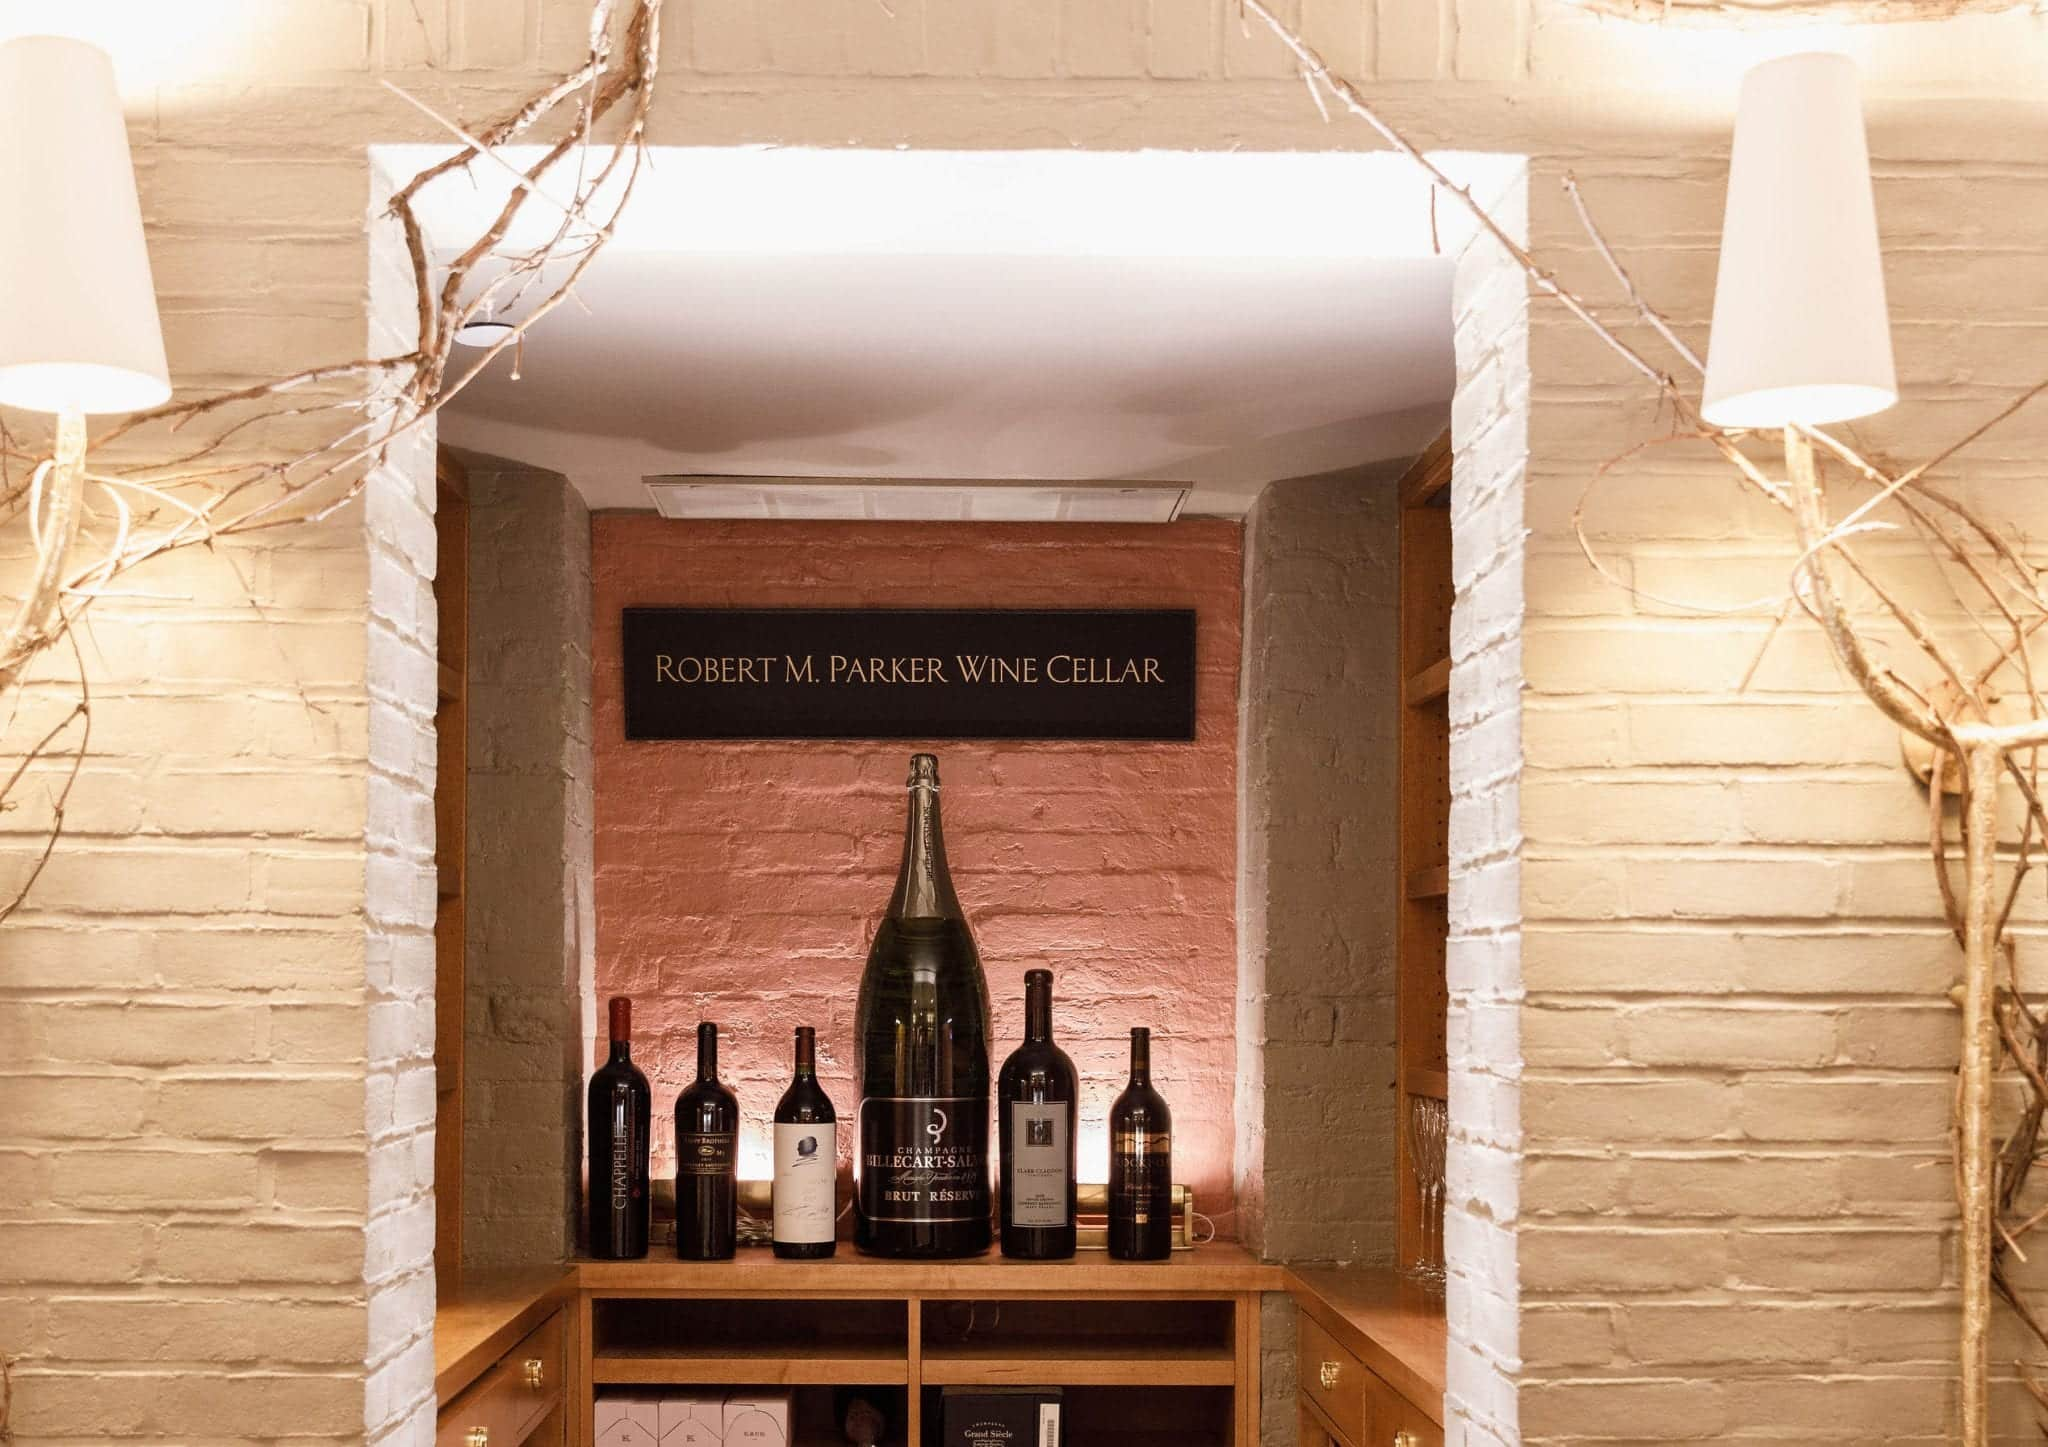 Wine on display under the Robert Parker Wine Cellar sign in Magdalena Restaurant.